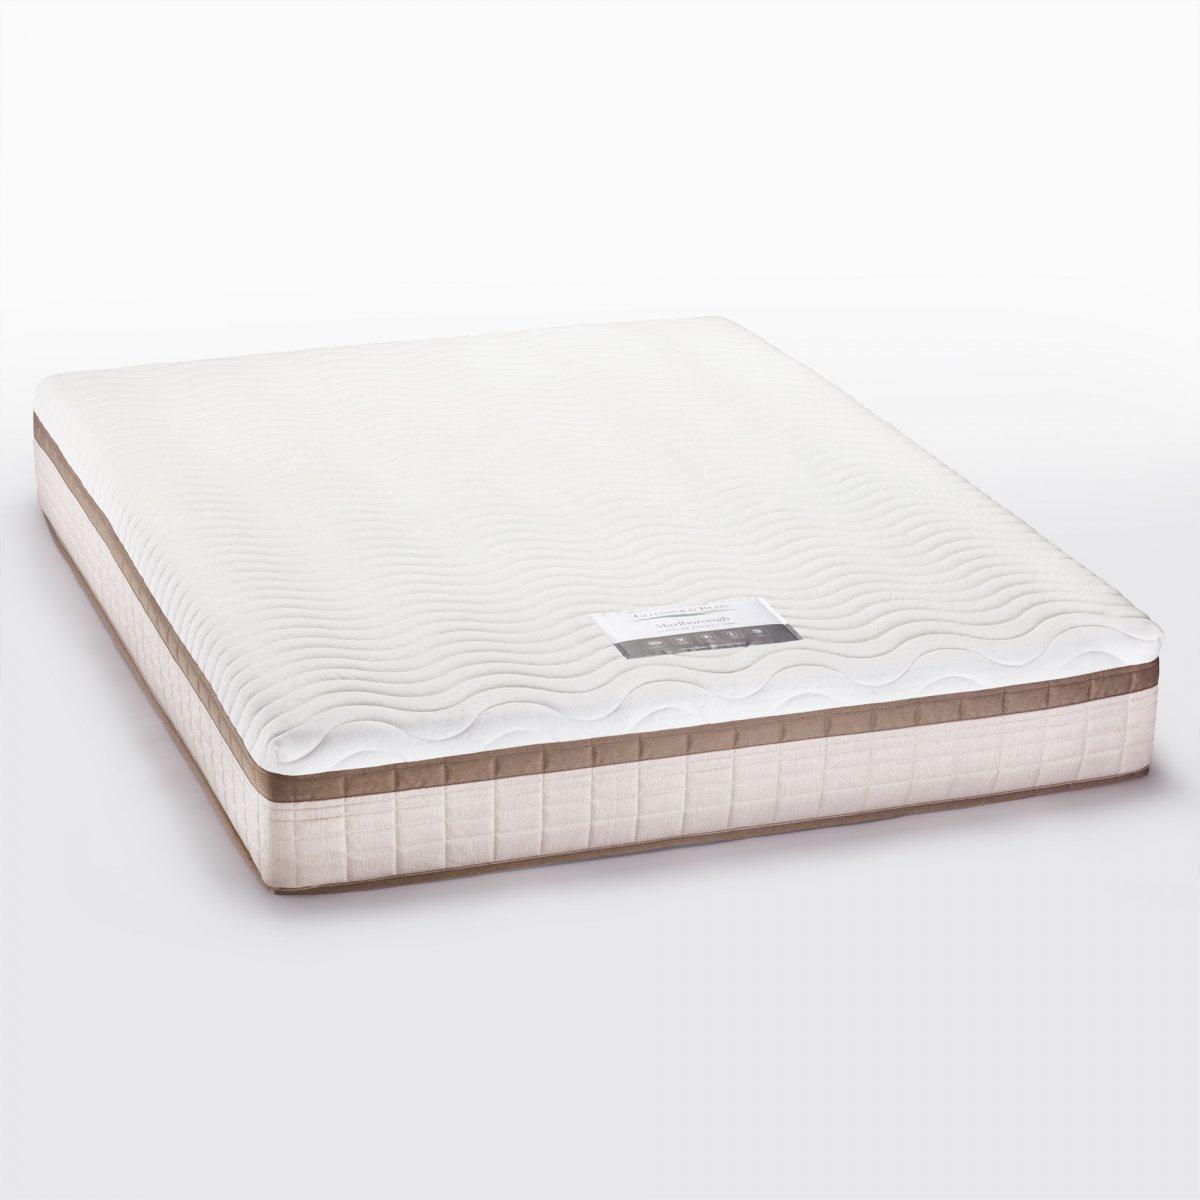 King Size Mattresses Tuft And Needle Mattress King Size On Slat Bed Priage Euro Box Top 12inch